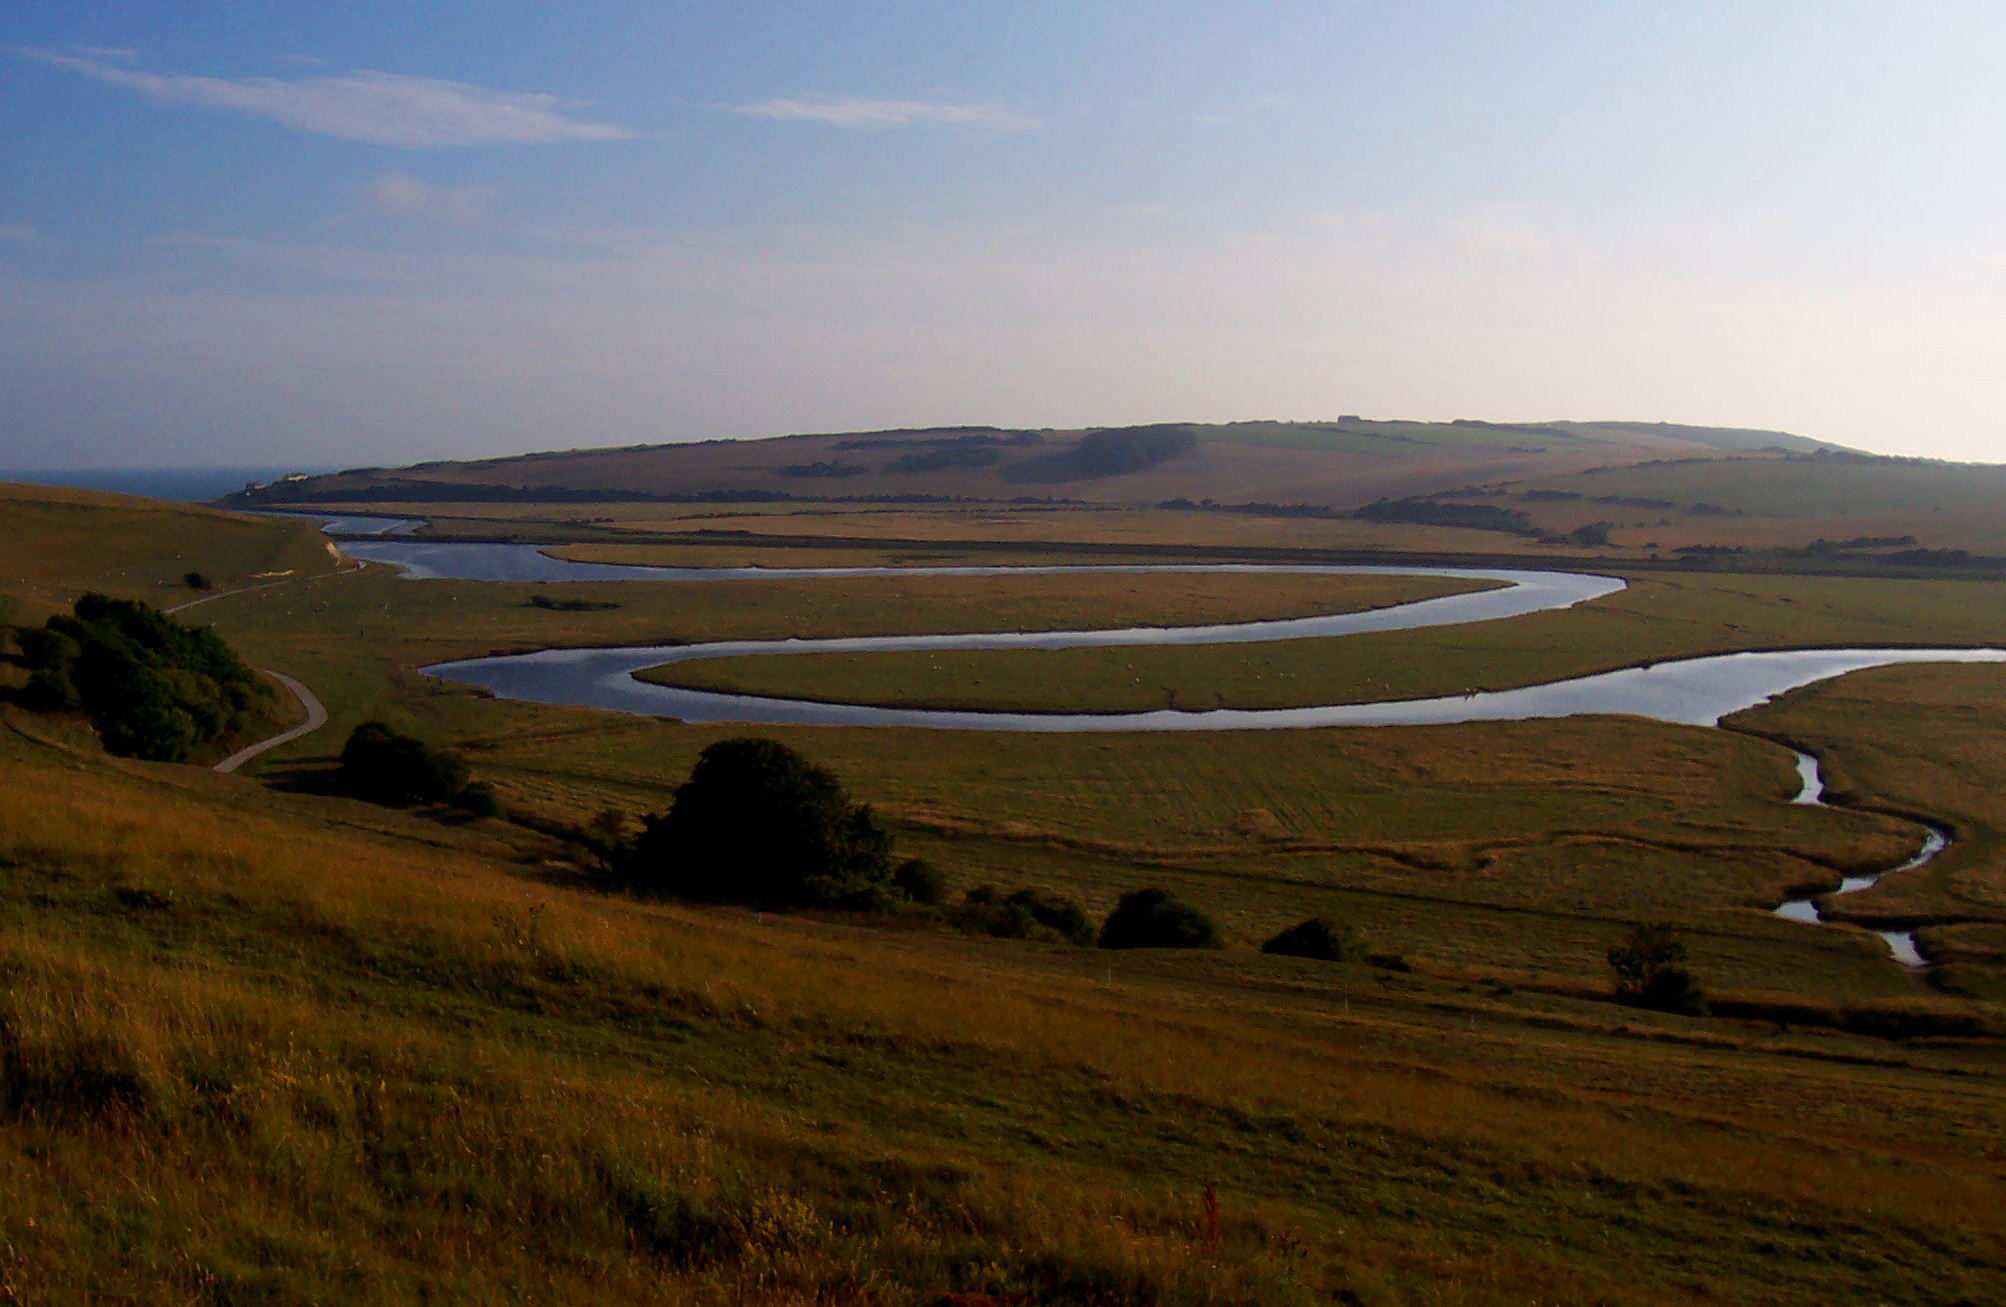 """Cuckmere River Meander"" by Marturius - Own work, CC BY-SA 3.0,  Wikimedia Commons"